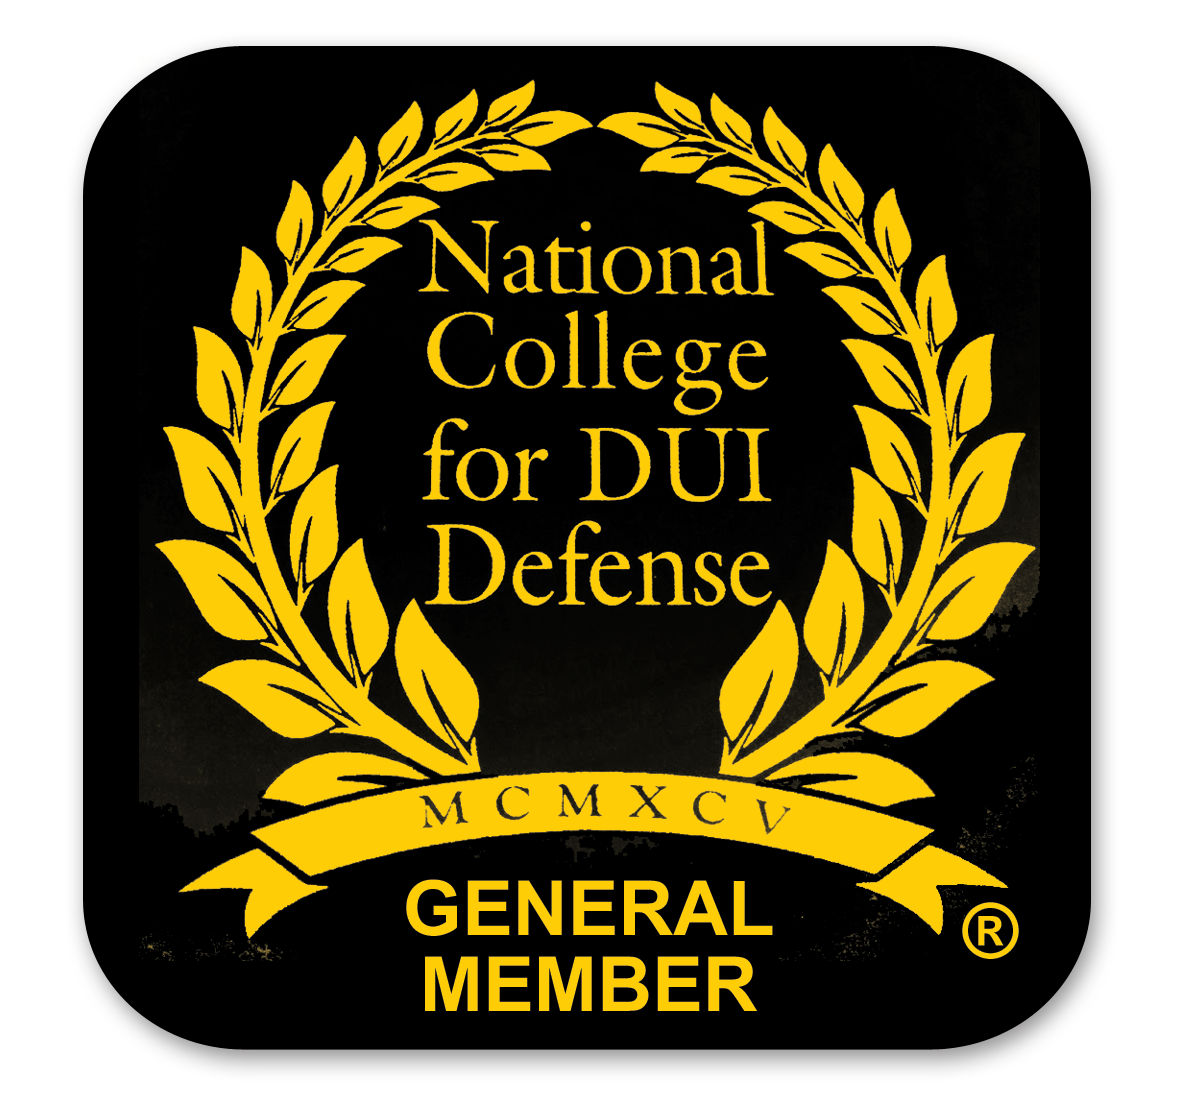 DUI Lawyer National College for DUI Defense Badge